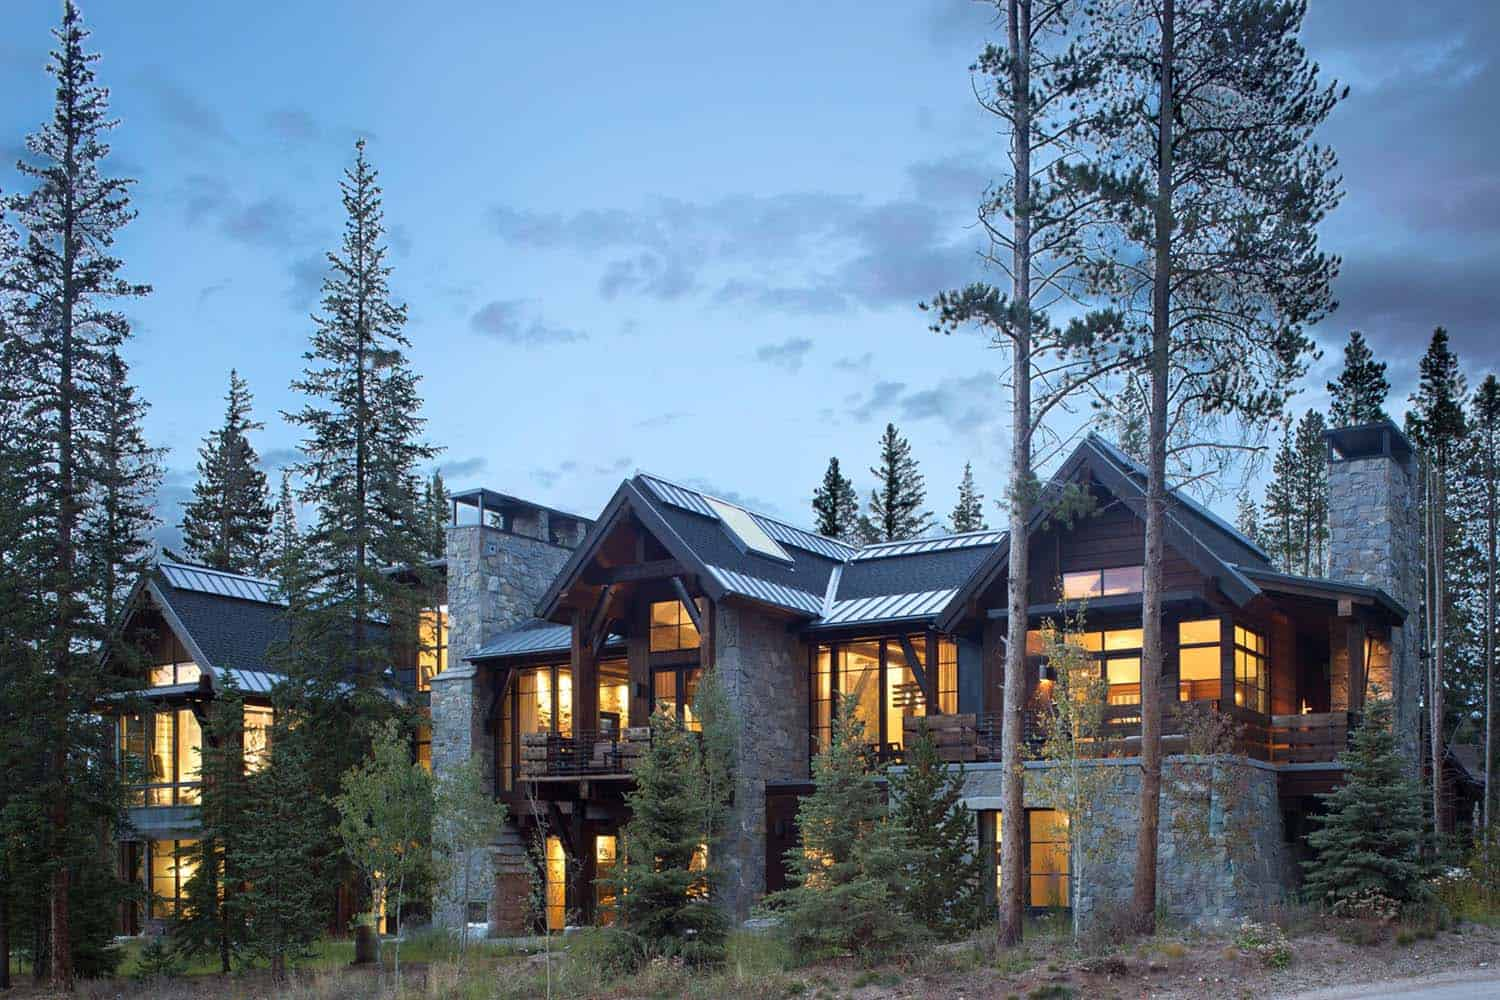 Mountain chalet in Colorado showcases rusticcontemporary